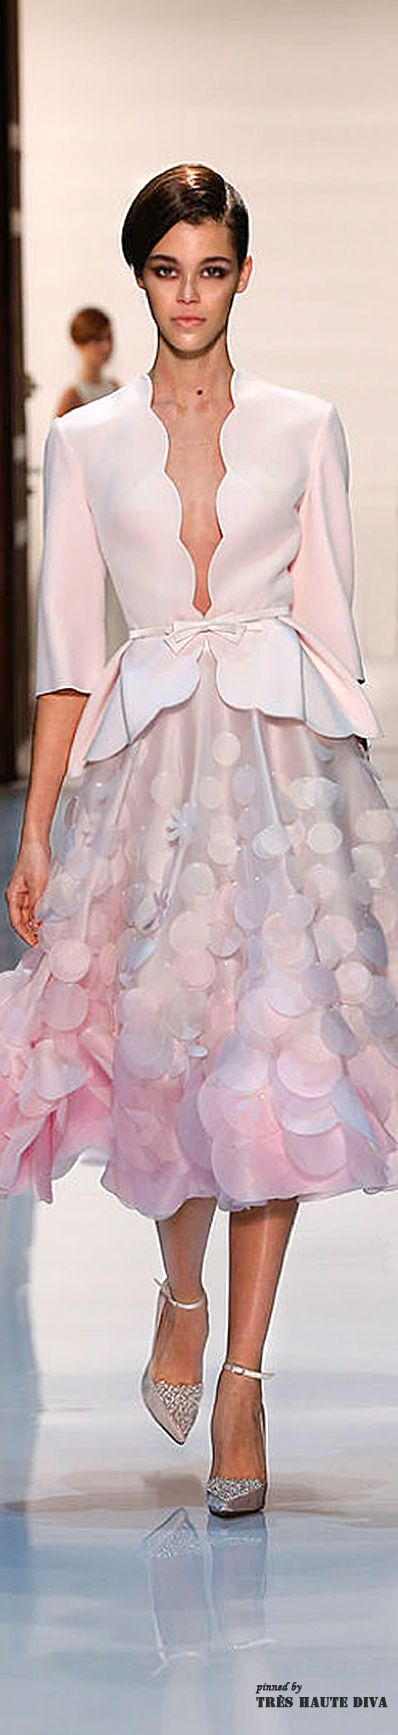 Georges Hobeika Spring 2014 Couture ♔ Runway-The skirt is Amazing www.adealwithGodbook.com